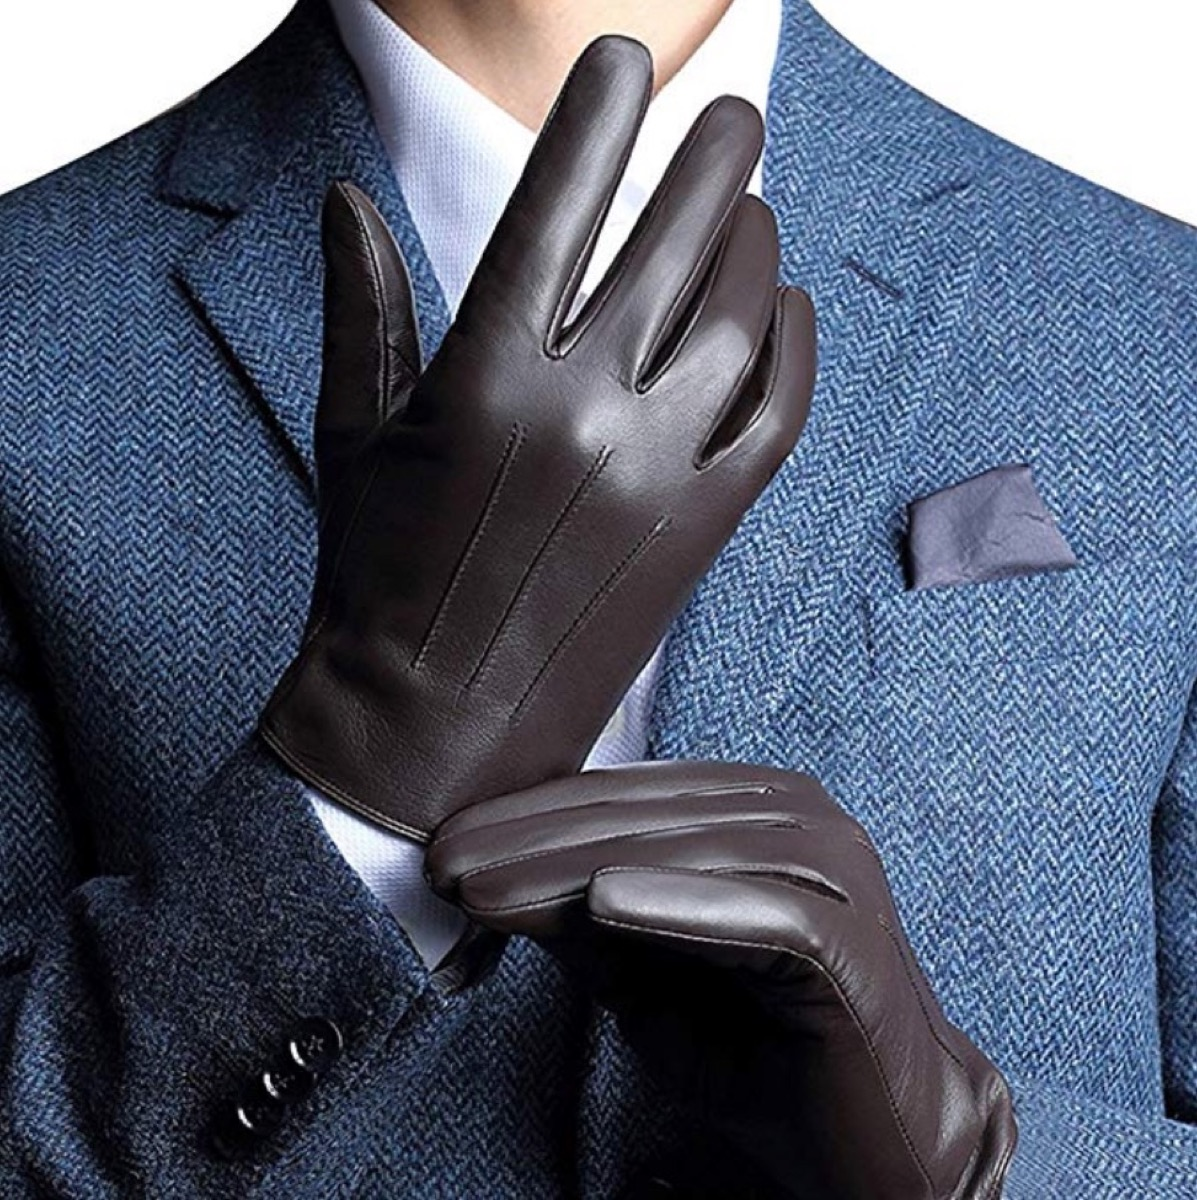 man putting on brown leather gloves